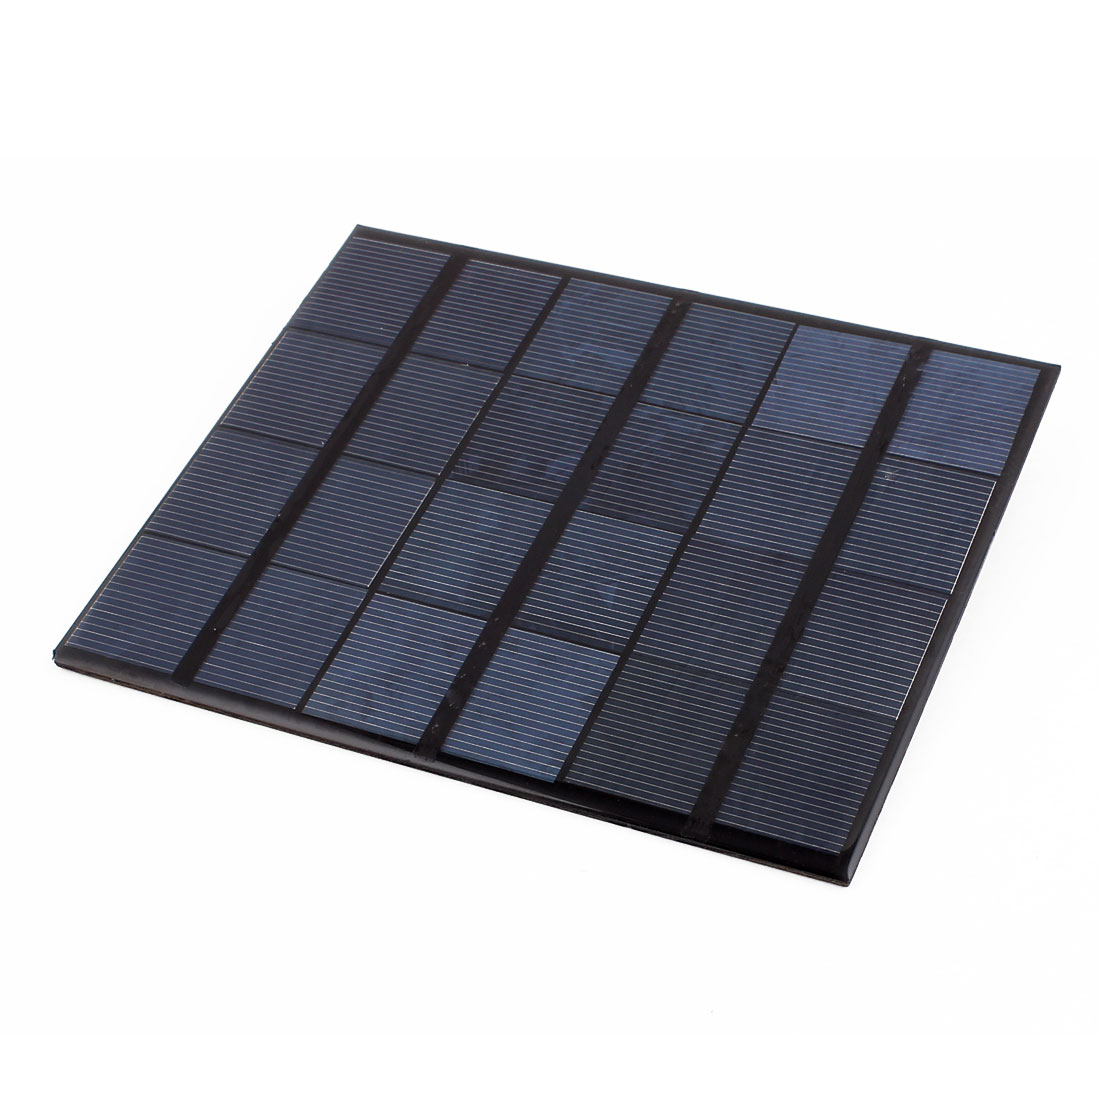 DC 6V 3.5W USB Energy Saving Solar Cell Panel Module 165x135x3mm for Charger